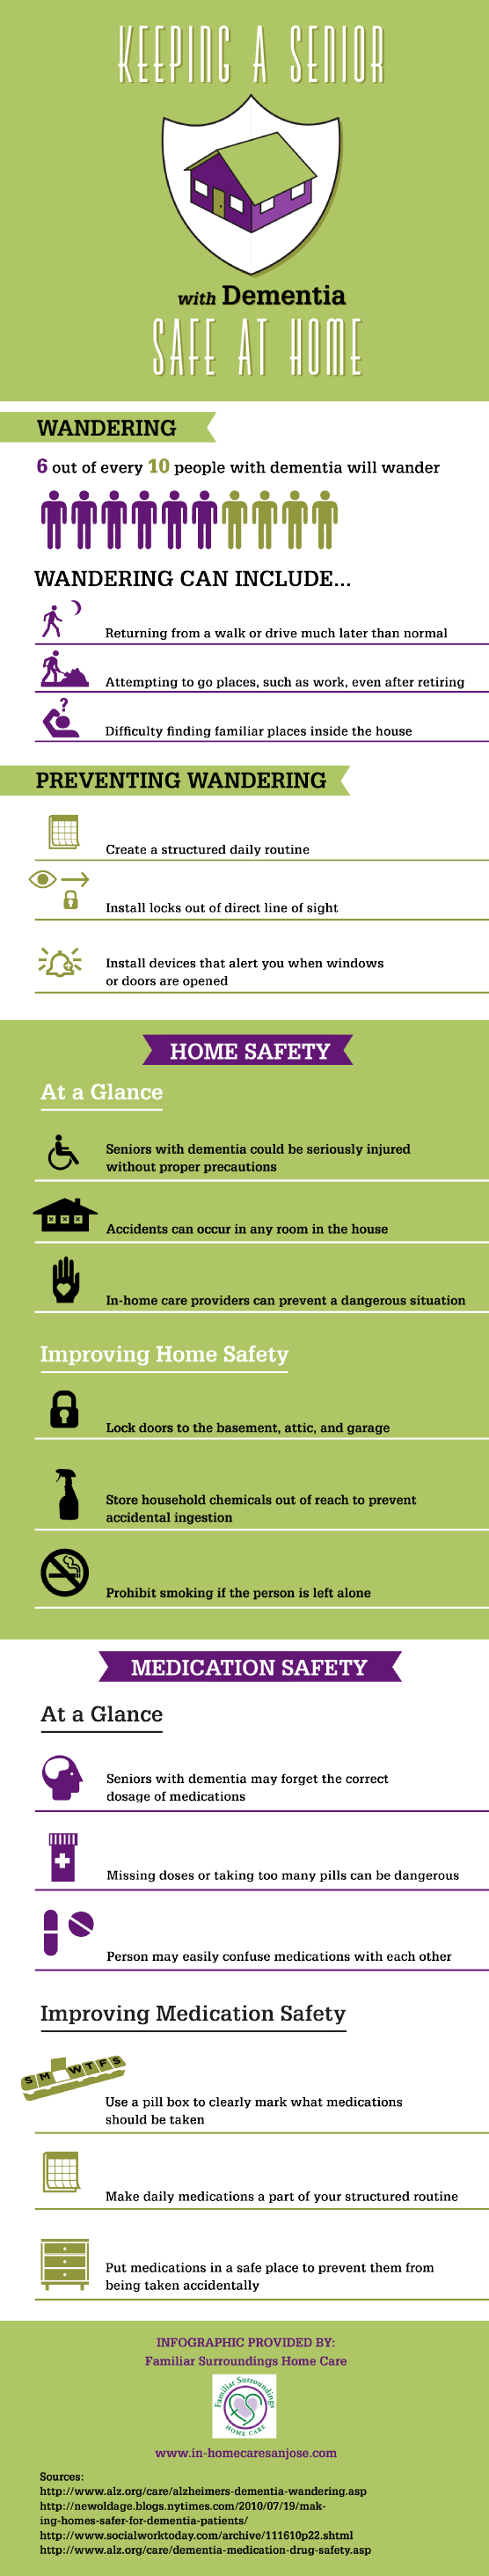 keeping-a-senior-with-dementia-safe-at-home_523494339653c